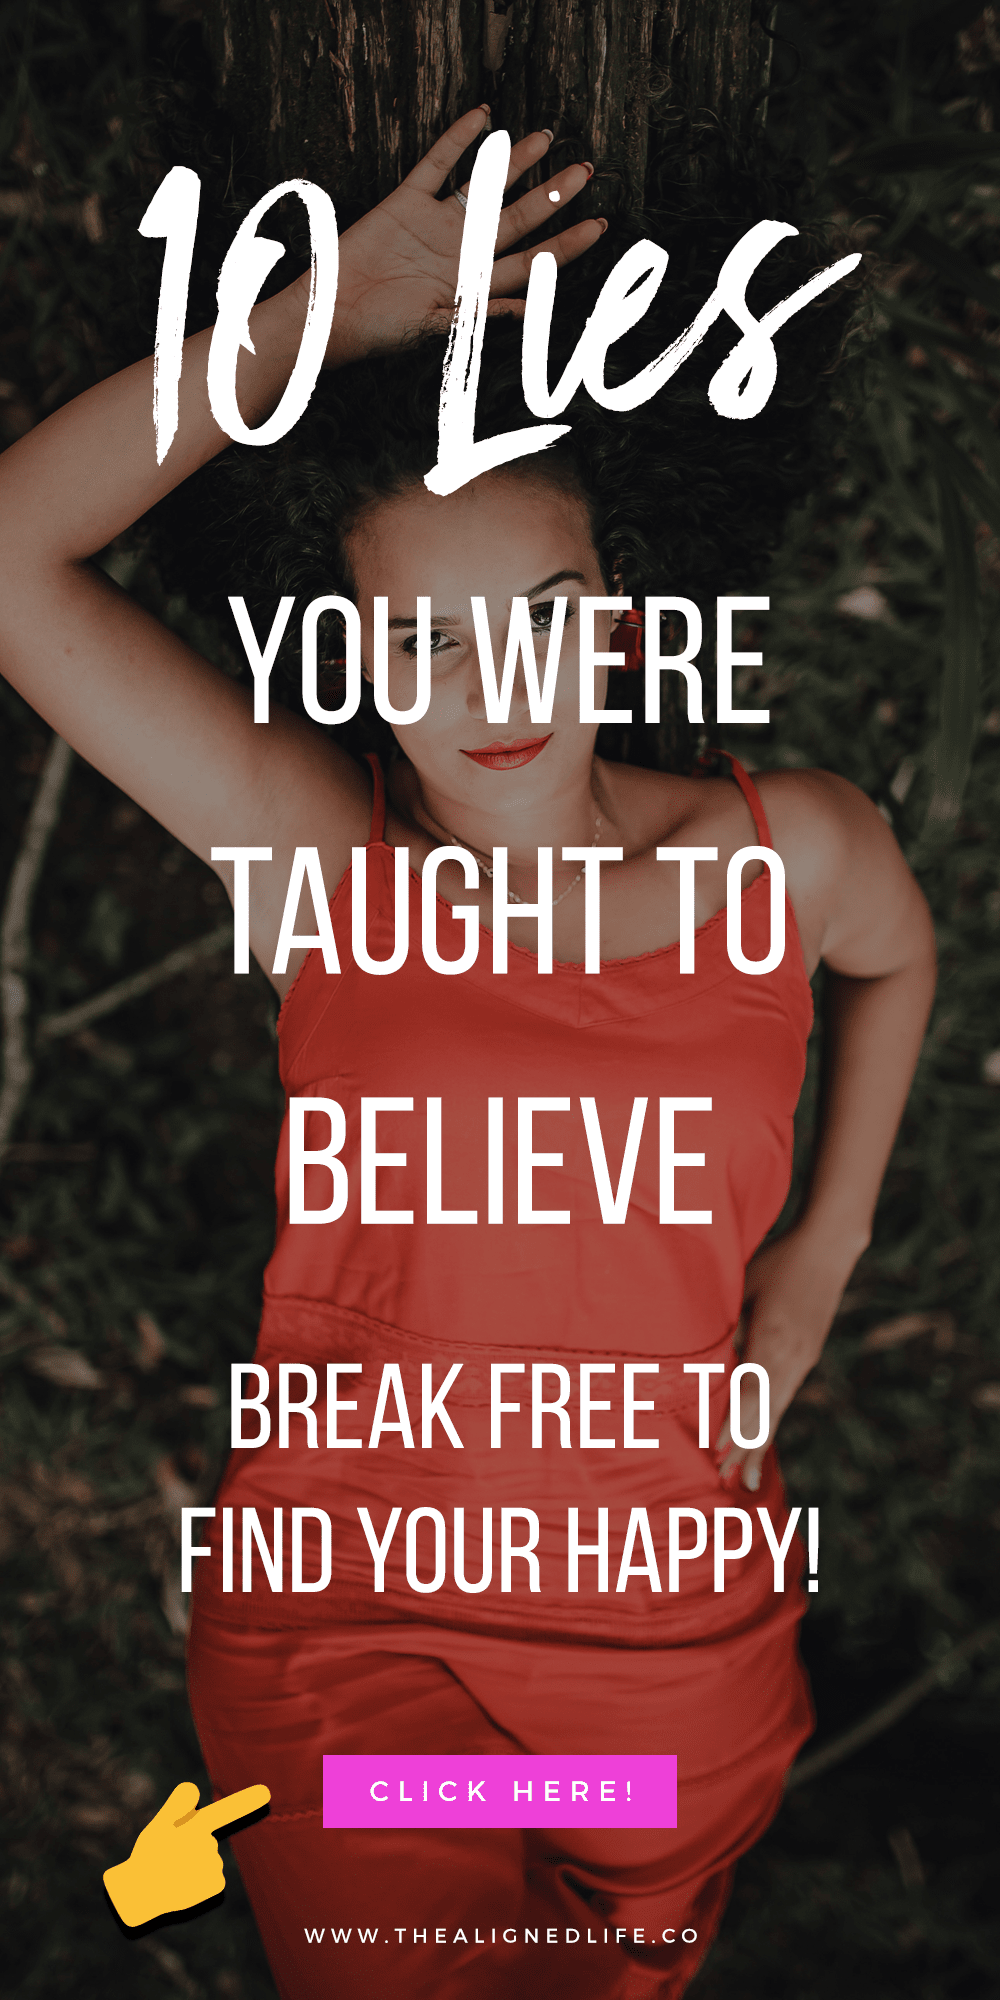 10 Lies You Were Taught To Believe (Break Free To Find Your Happy!)